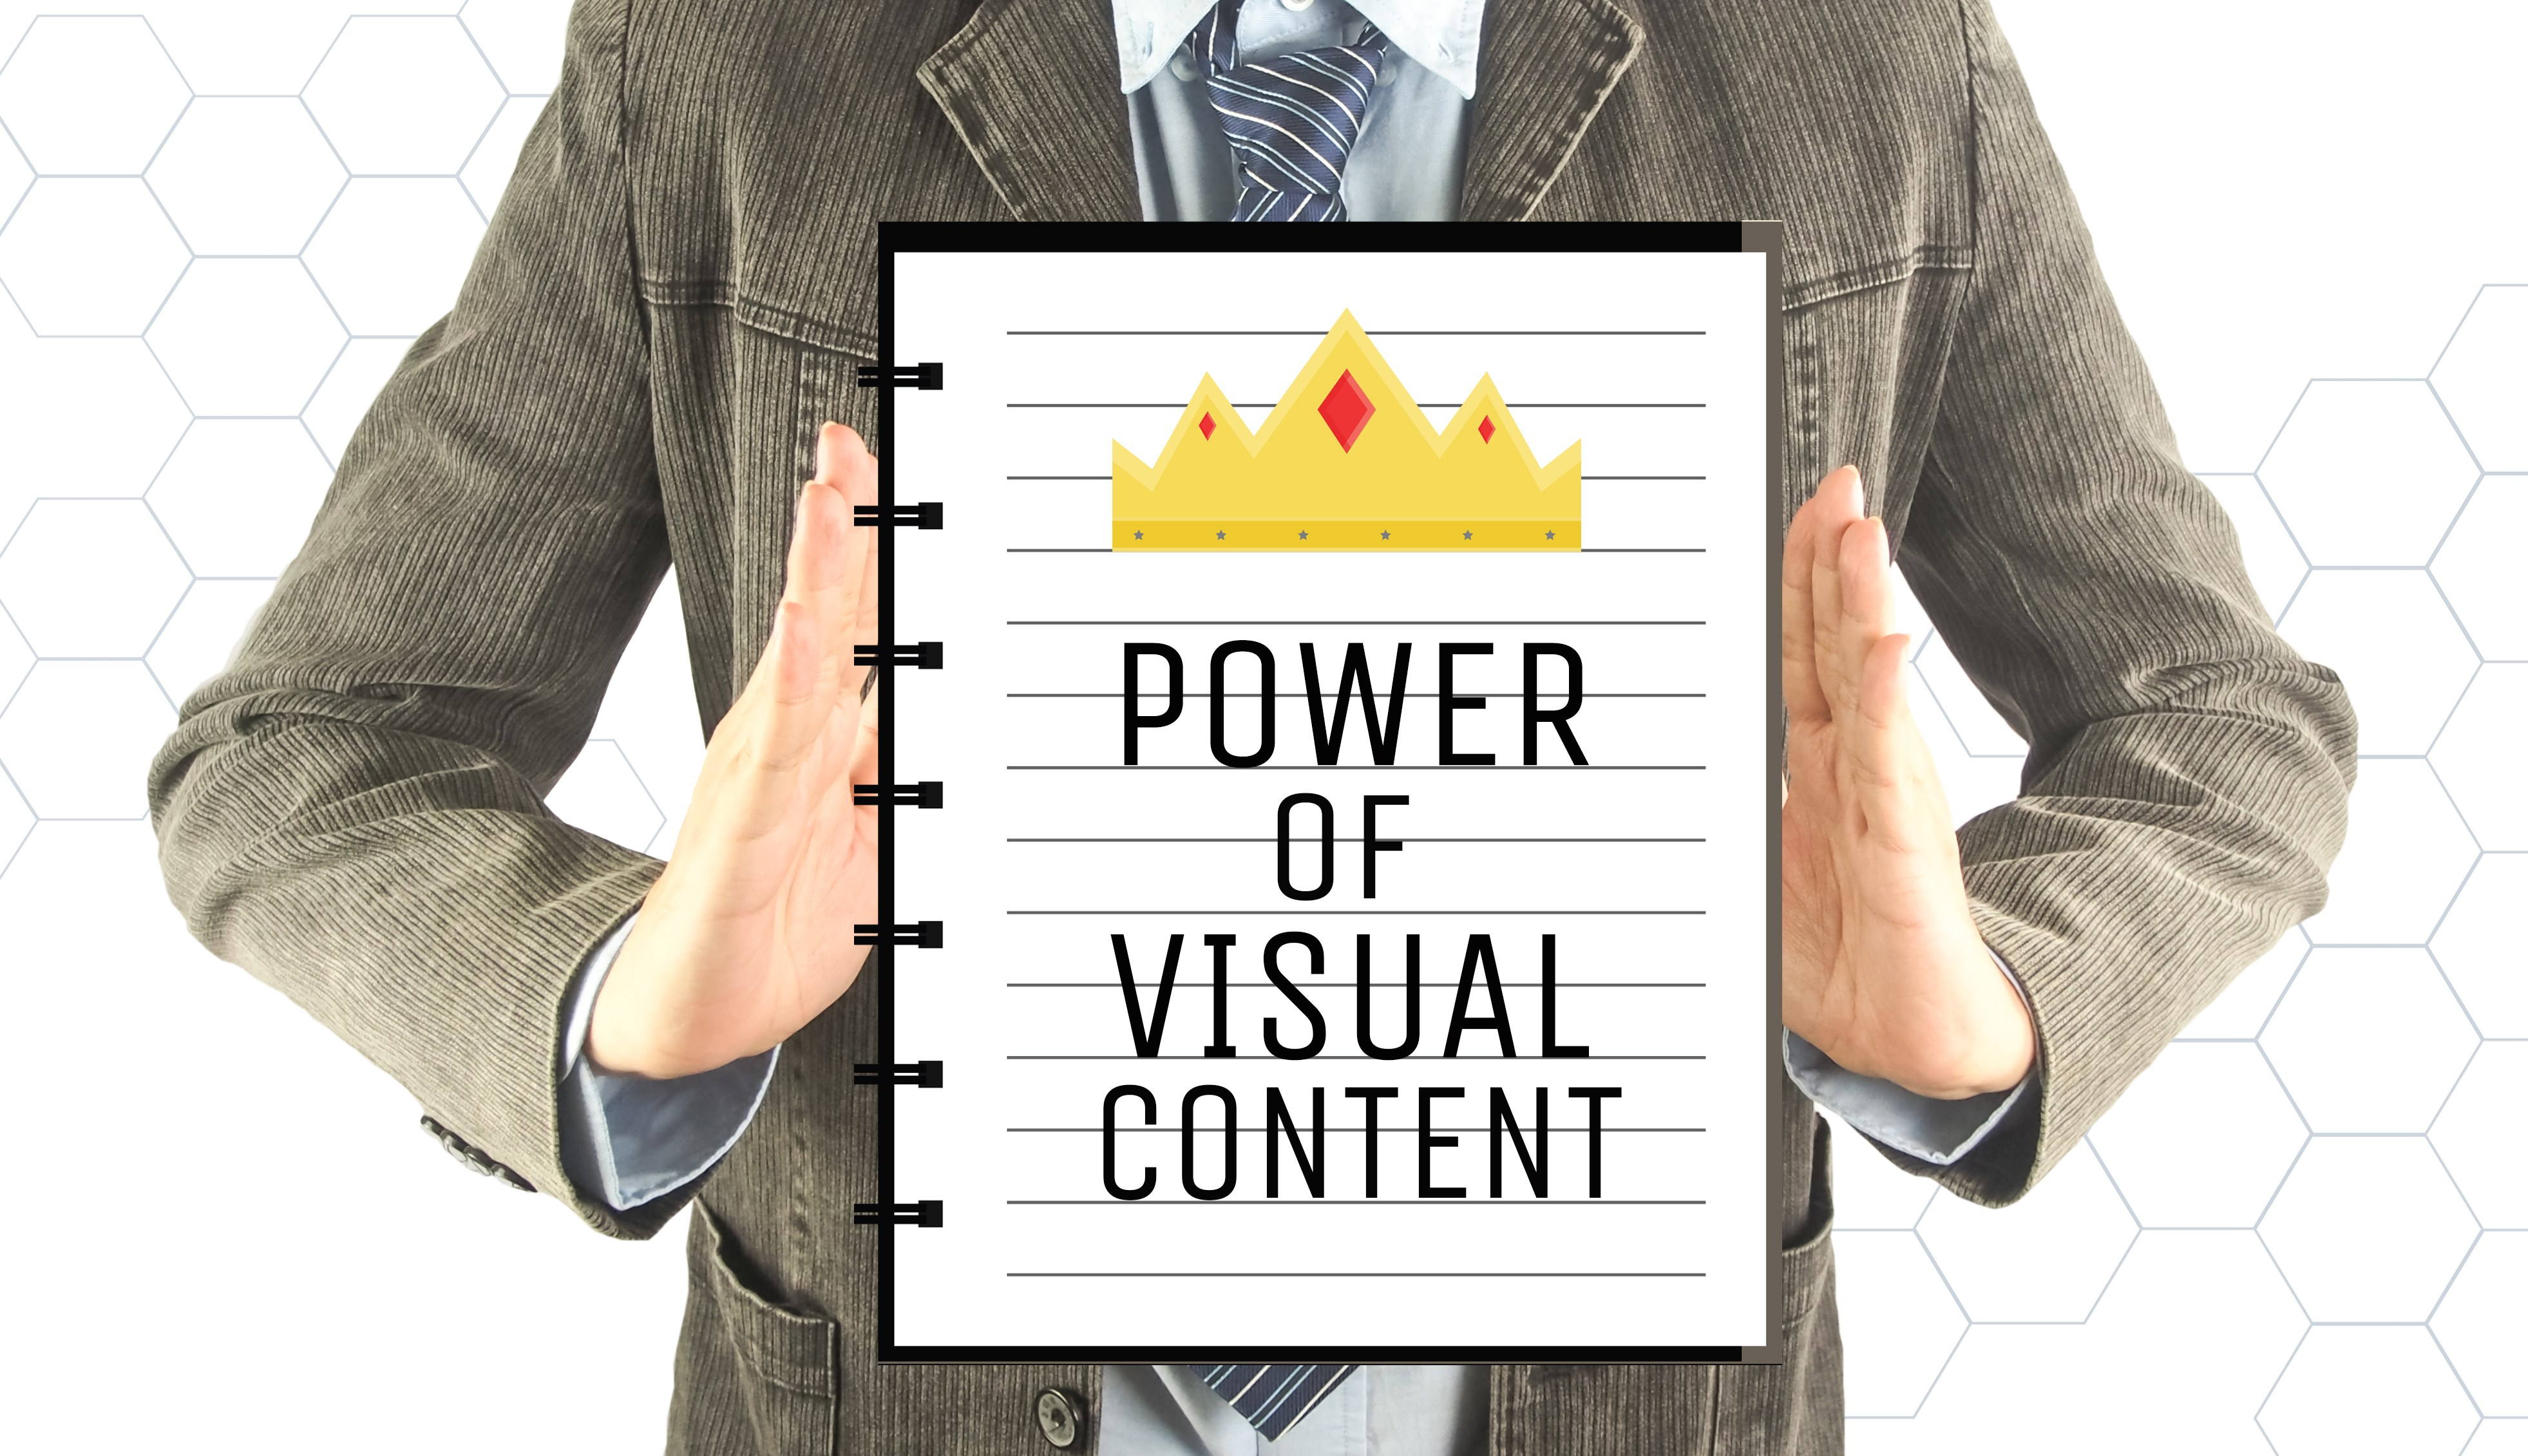 Tips For Creating Visual Content on Social Media